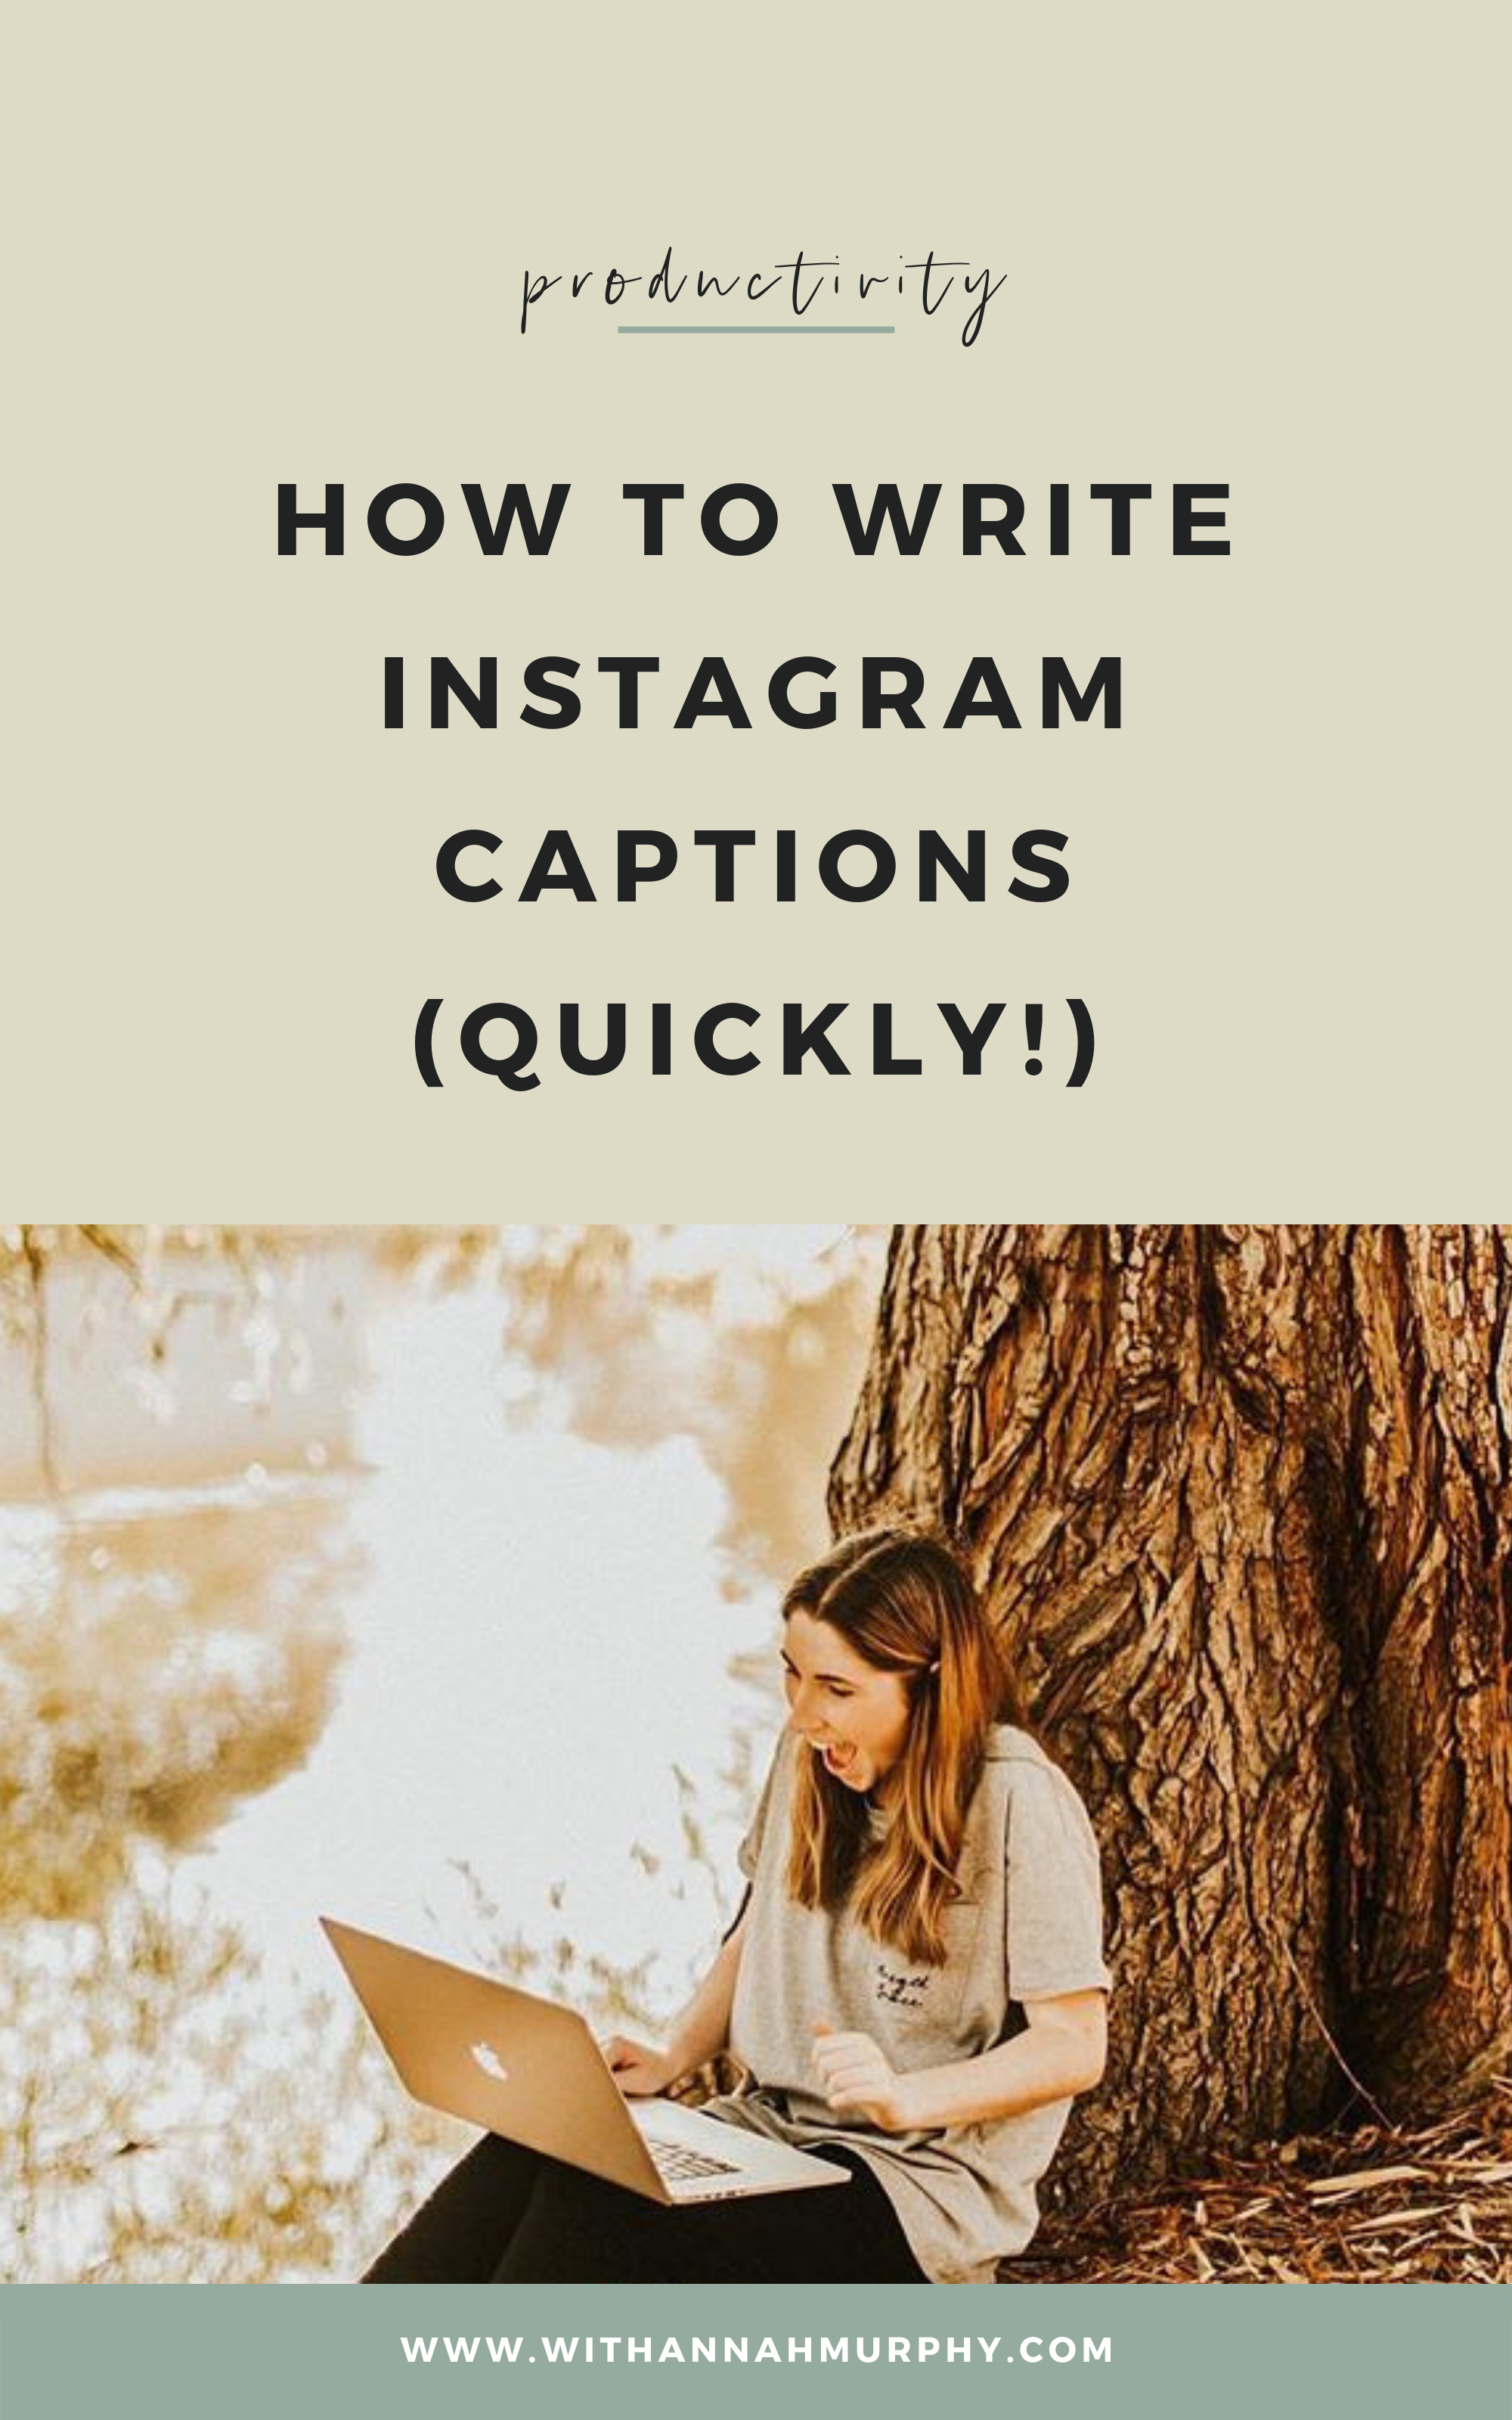 Writing Instagram captions can be time consuming. These 3 tips have helped me dramatically improve my efficiency in writing Instagram captions